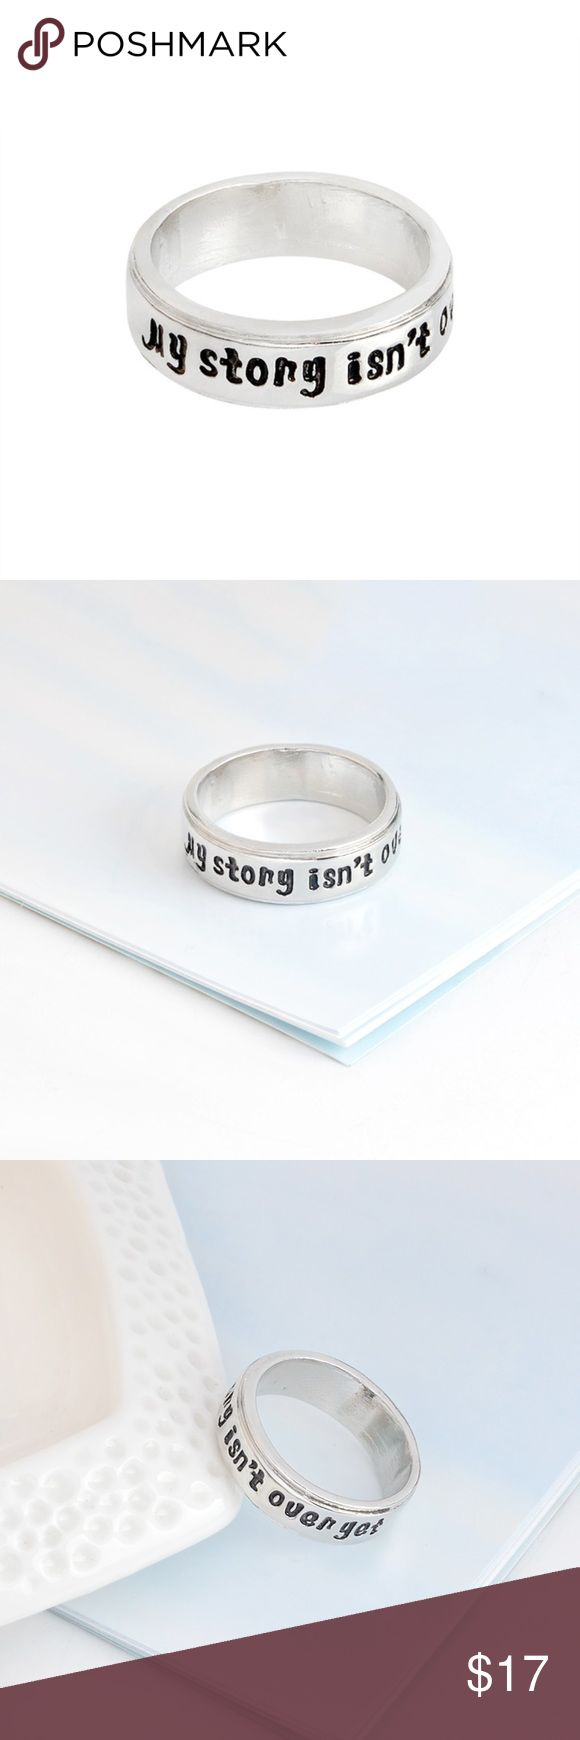 My story isn't over yet Ring Suicide Awareness and Prevention ring.  Semicolon symbol.  My story isn't over yet. Unisex. Jewelry Rings